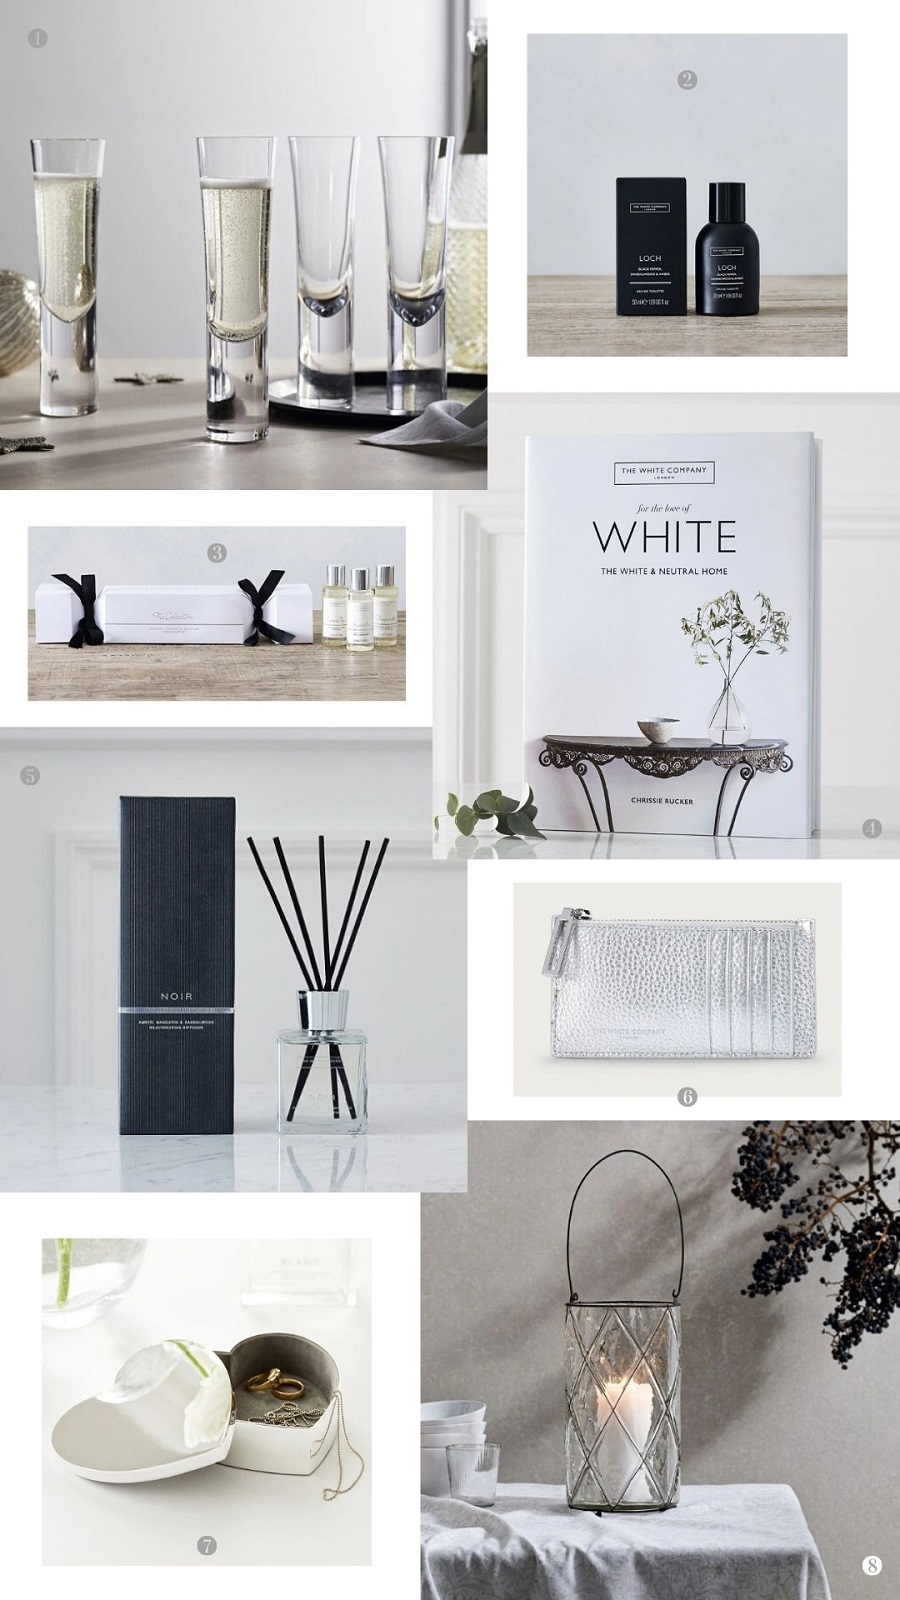 Great for Gifts - The White Company